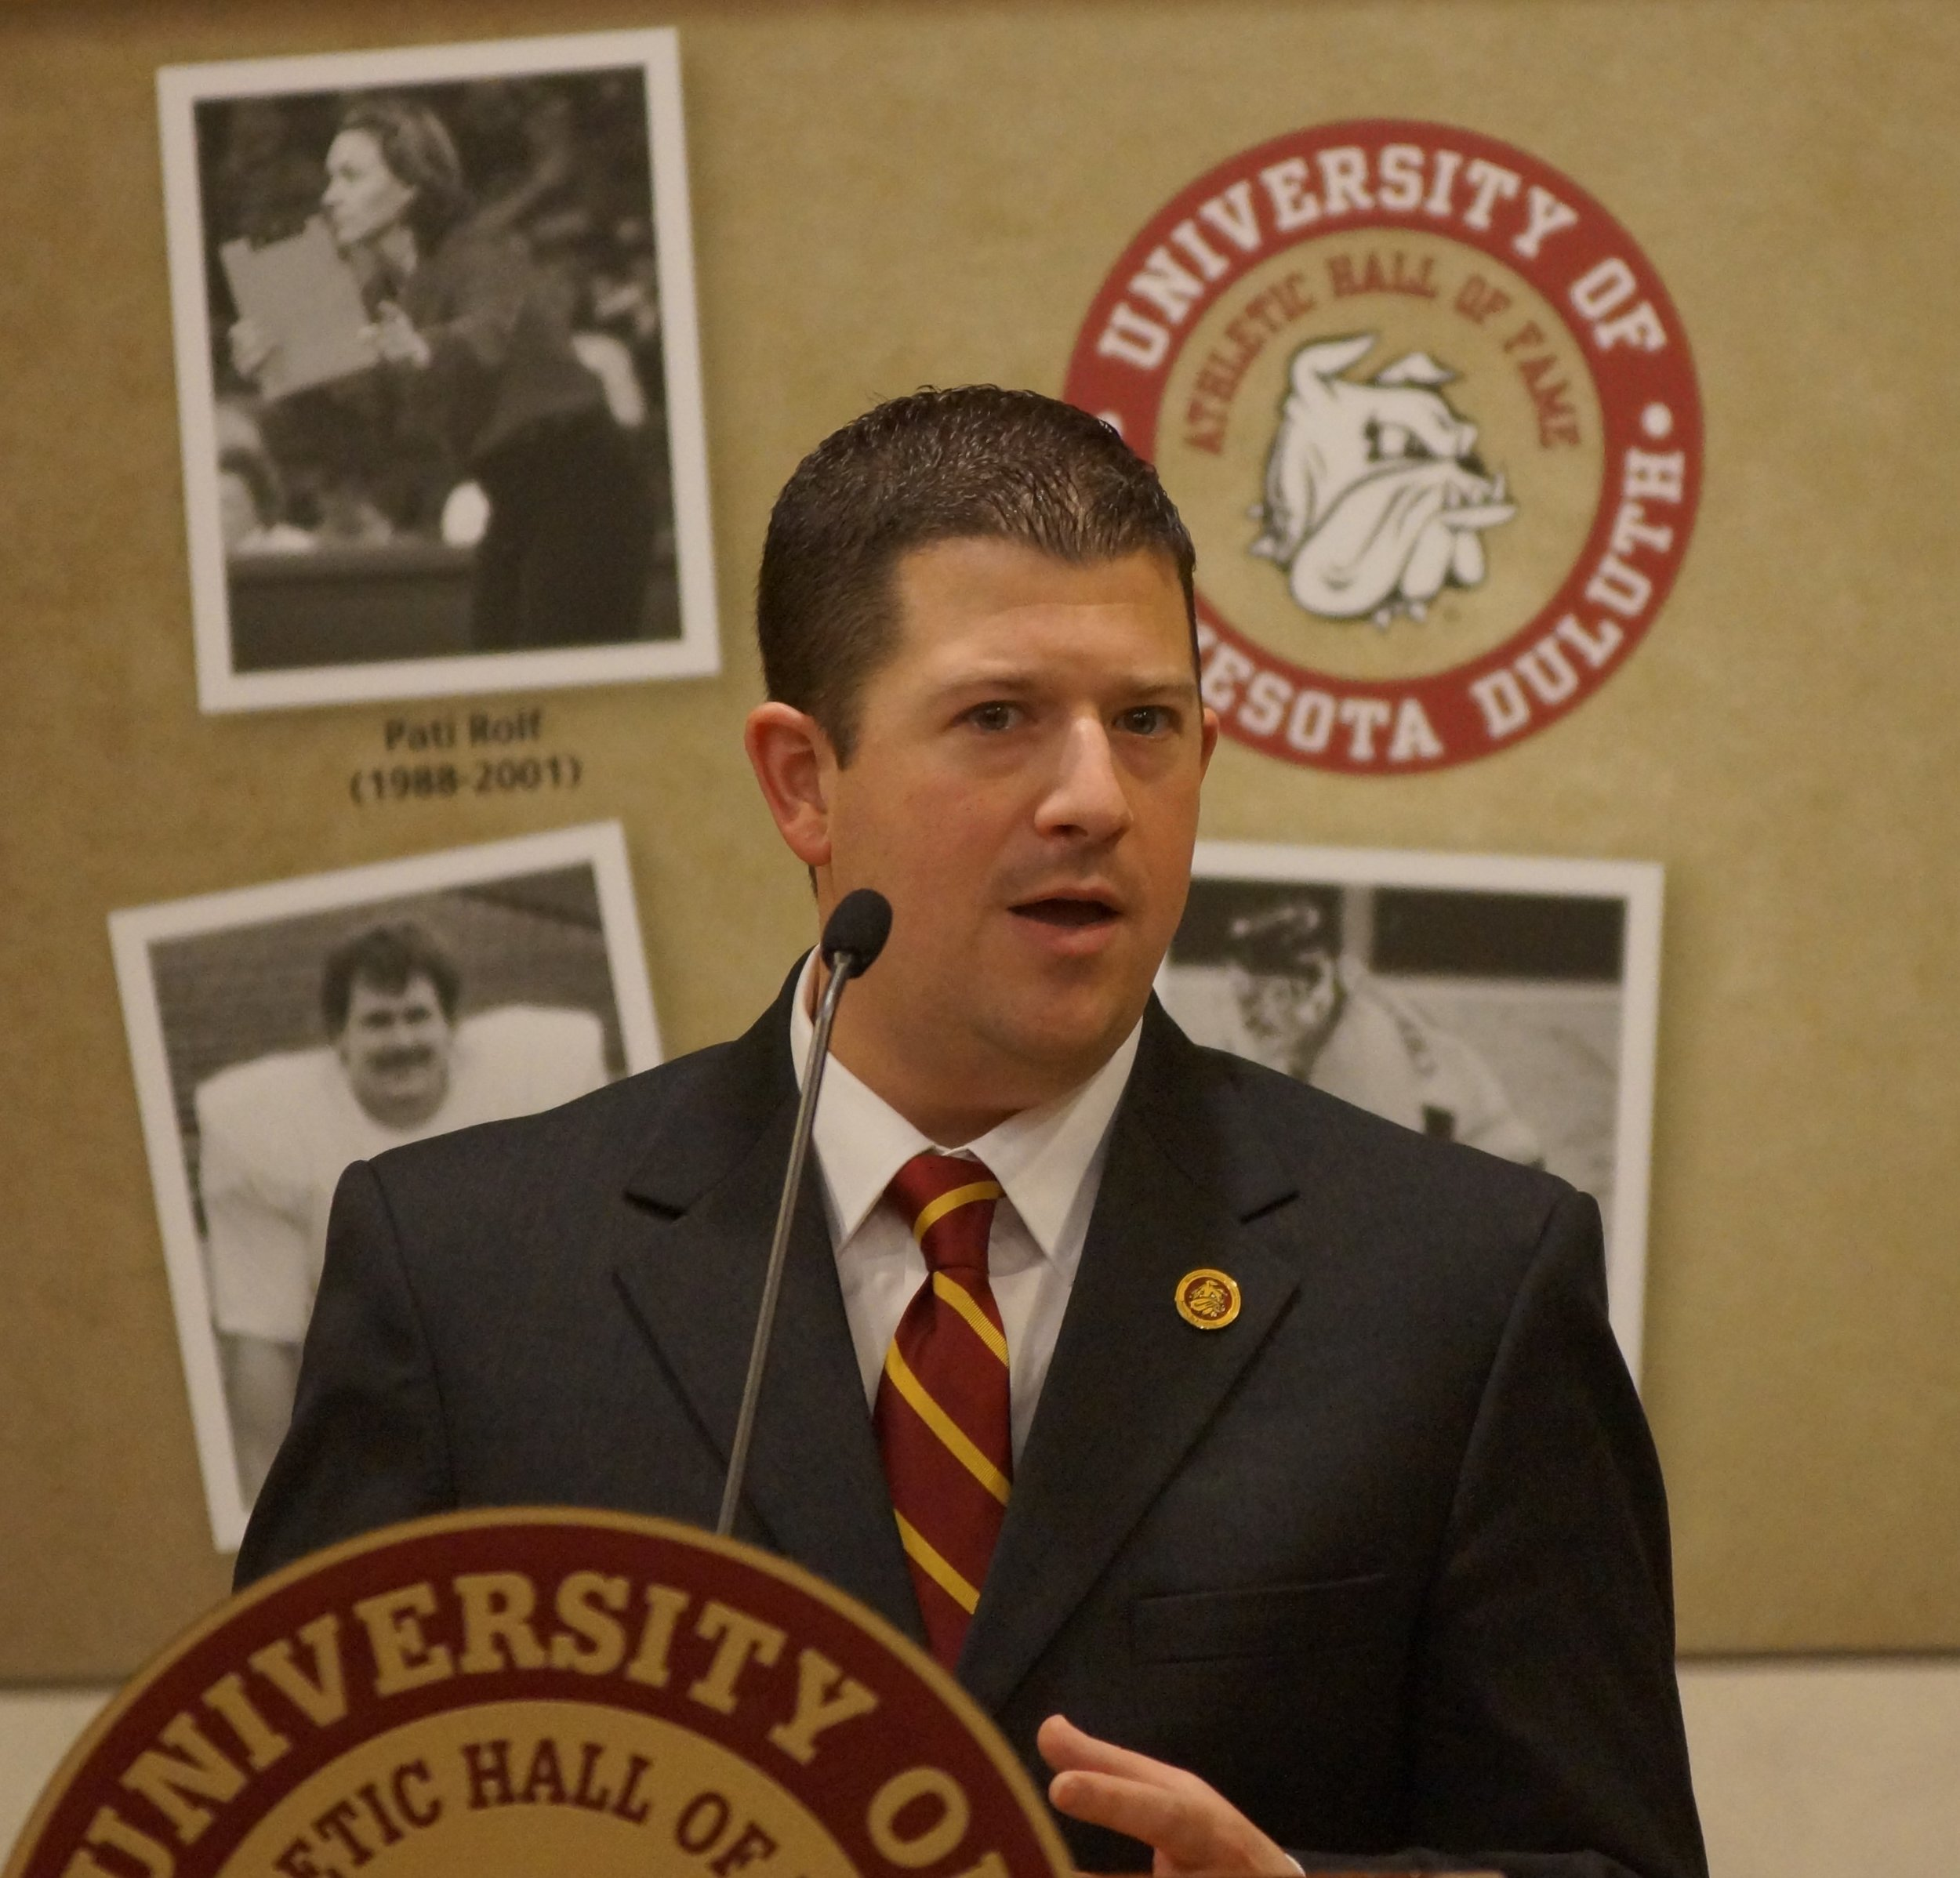 UMD Athletic Director Josh Berlo will highlight community engagement in UMD athletics and the value of sports in society.Photo by Ken Moran.